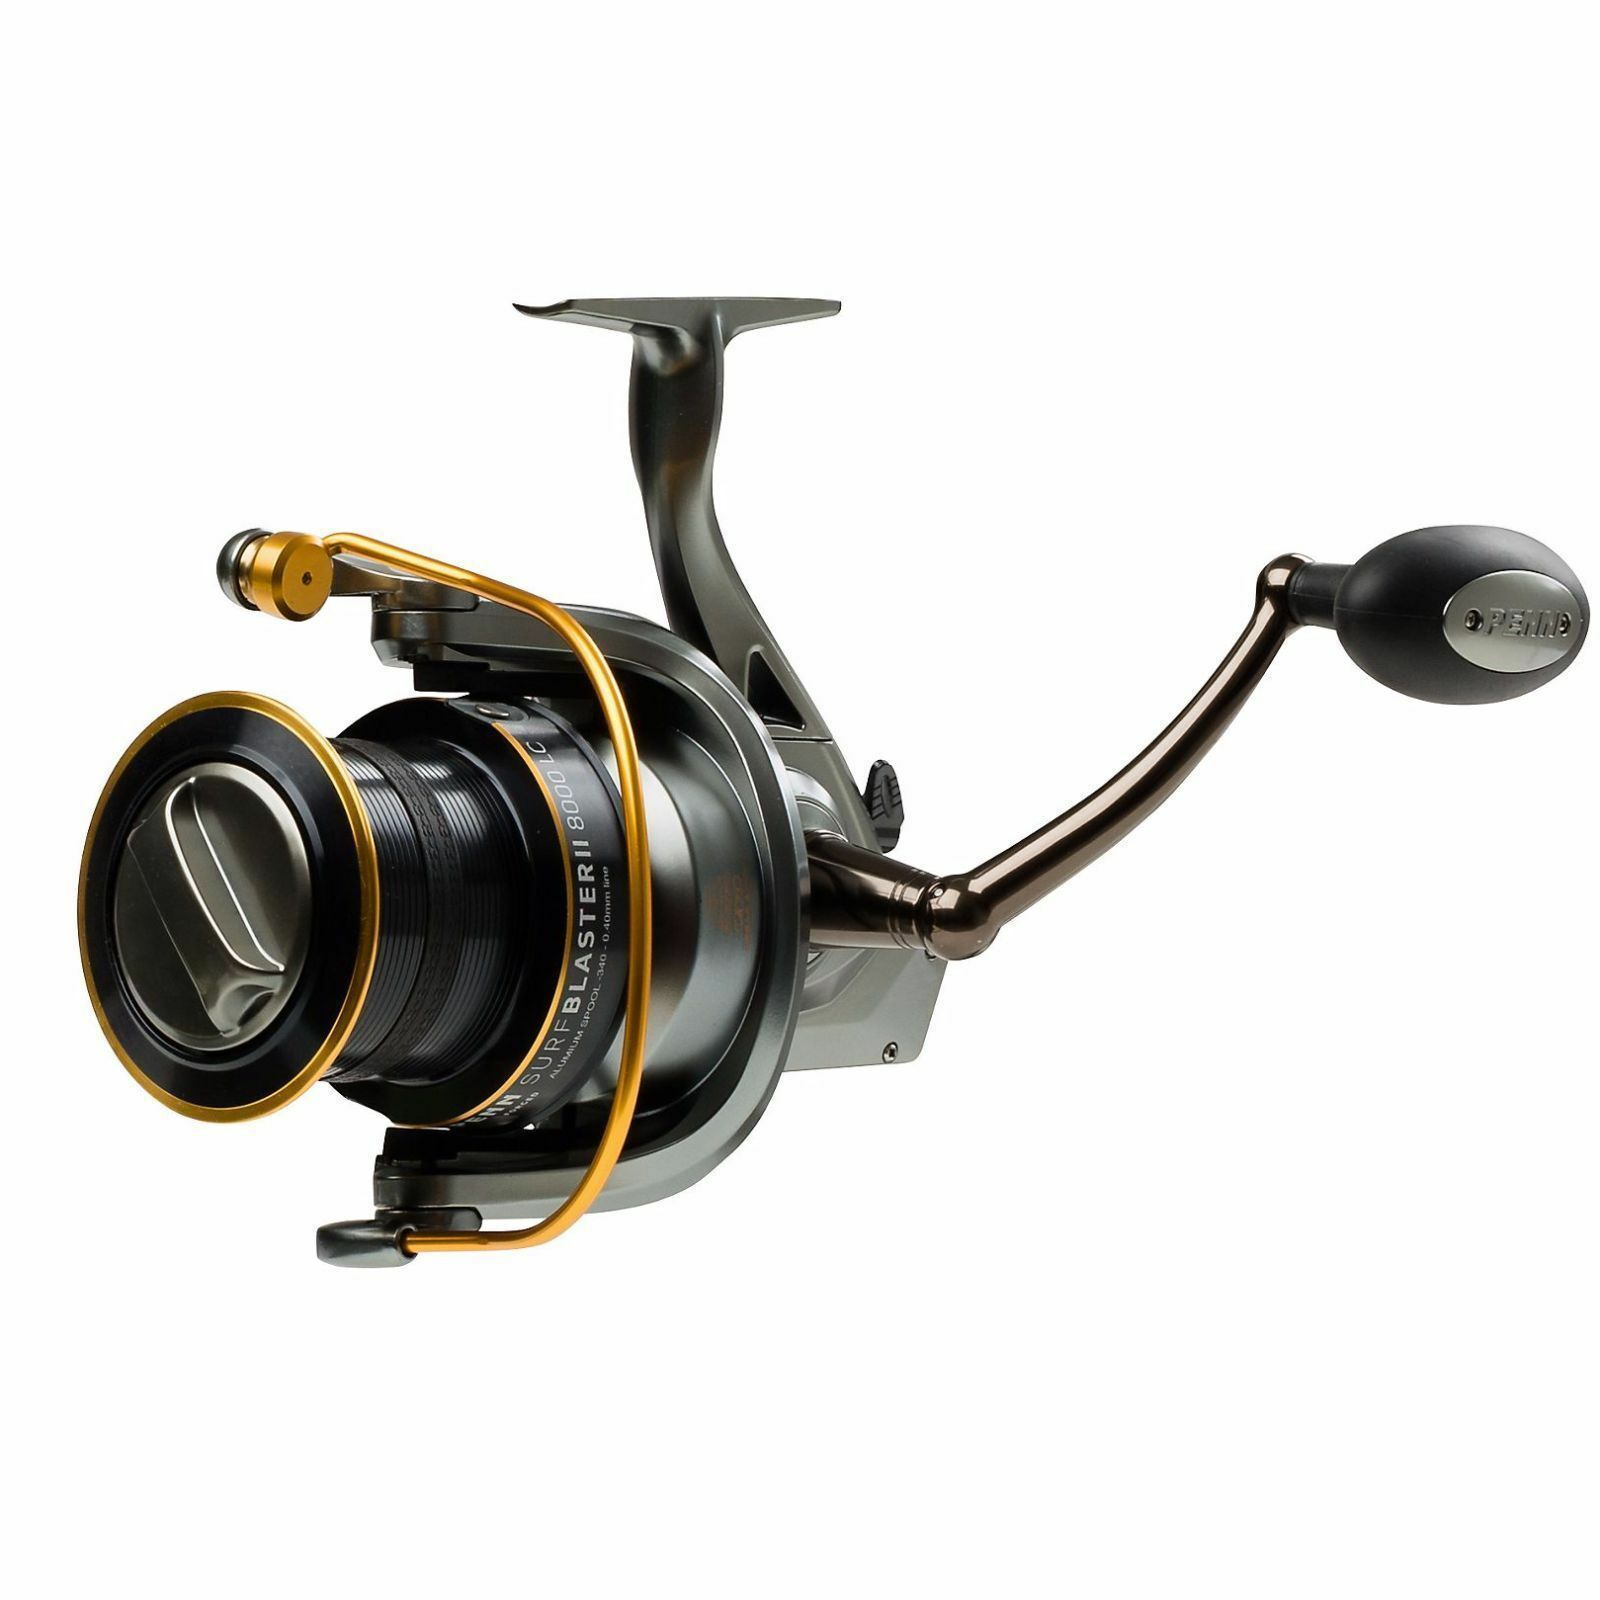 PENN Surfblaster II 7000 long cast Beach Sea Reel  -1404620